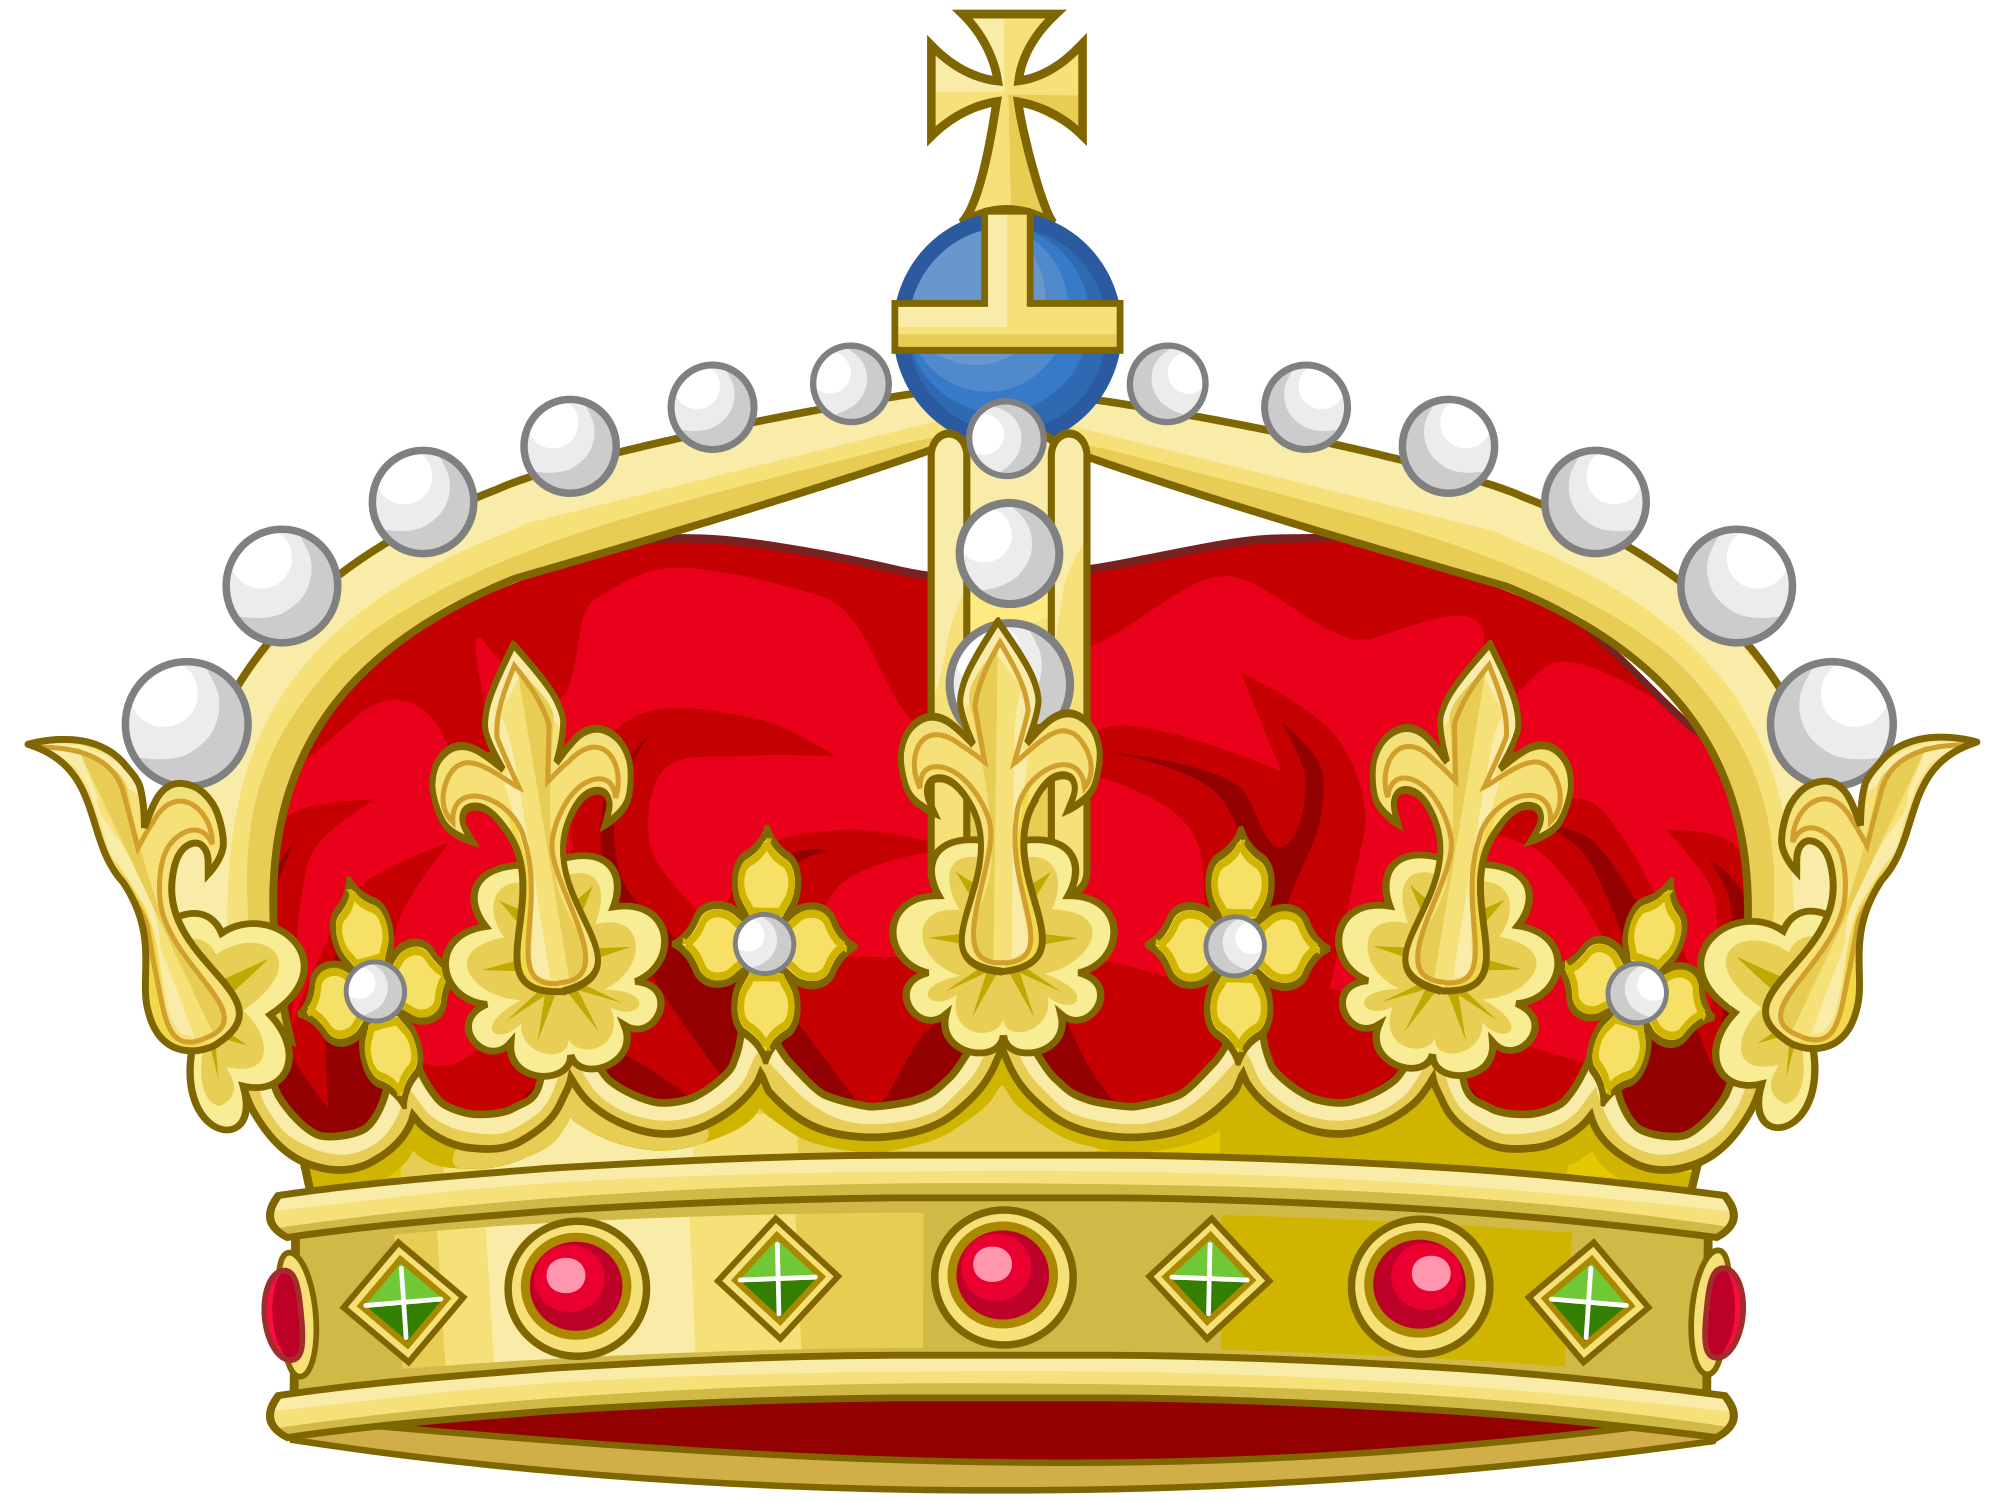 Royalty crown clipart clipart freeuse library King Crown Cliparts#5015827 - Shop of Clipart Library clipart freeuse library